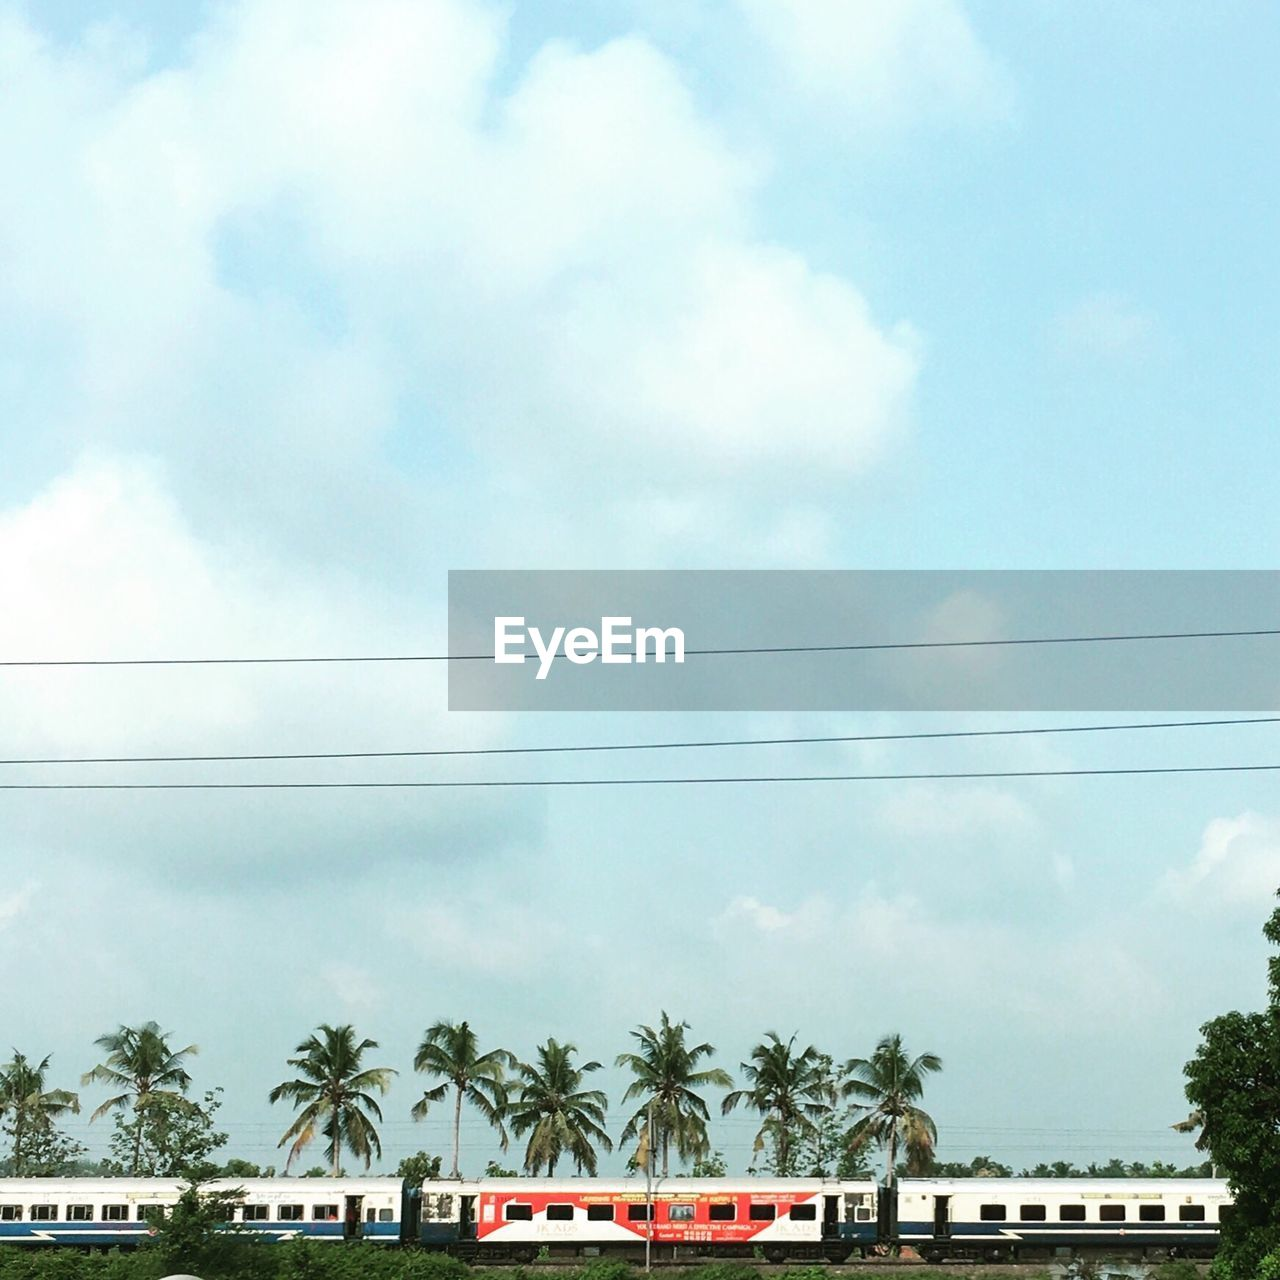 Train by coconut palm trees against cloudy sky